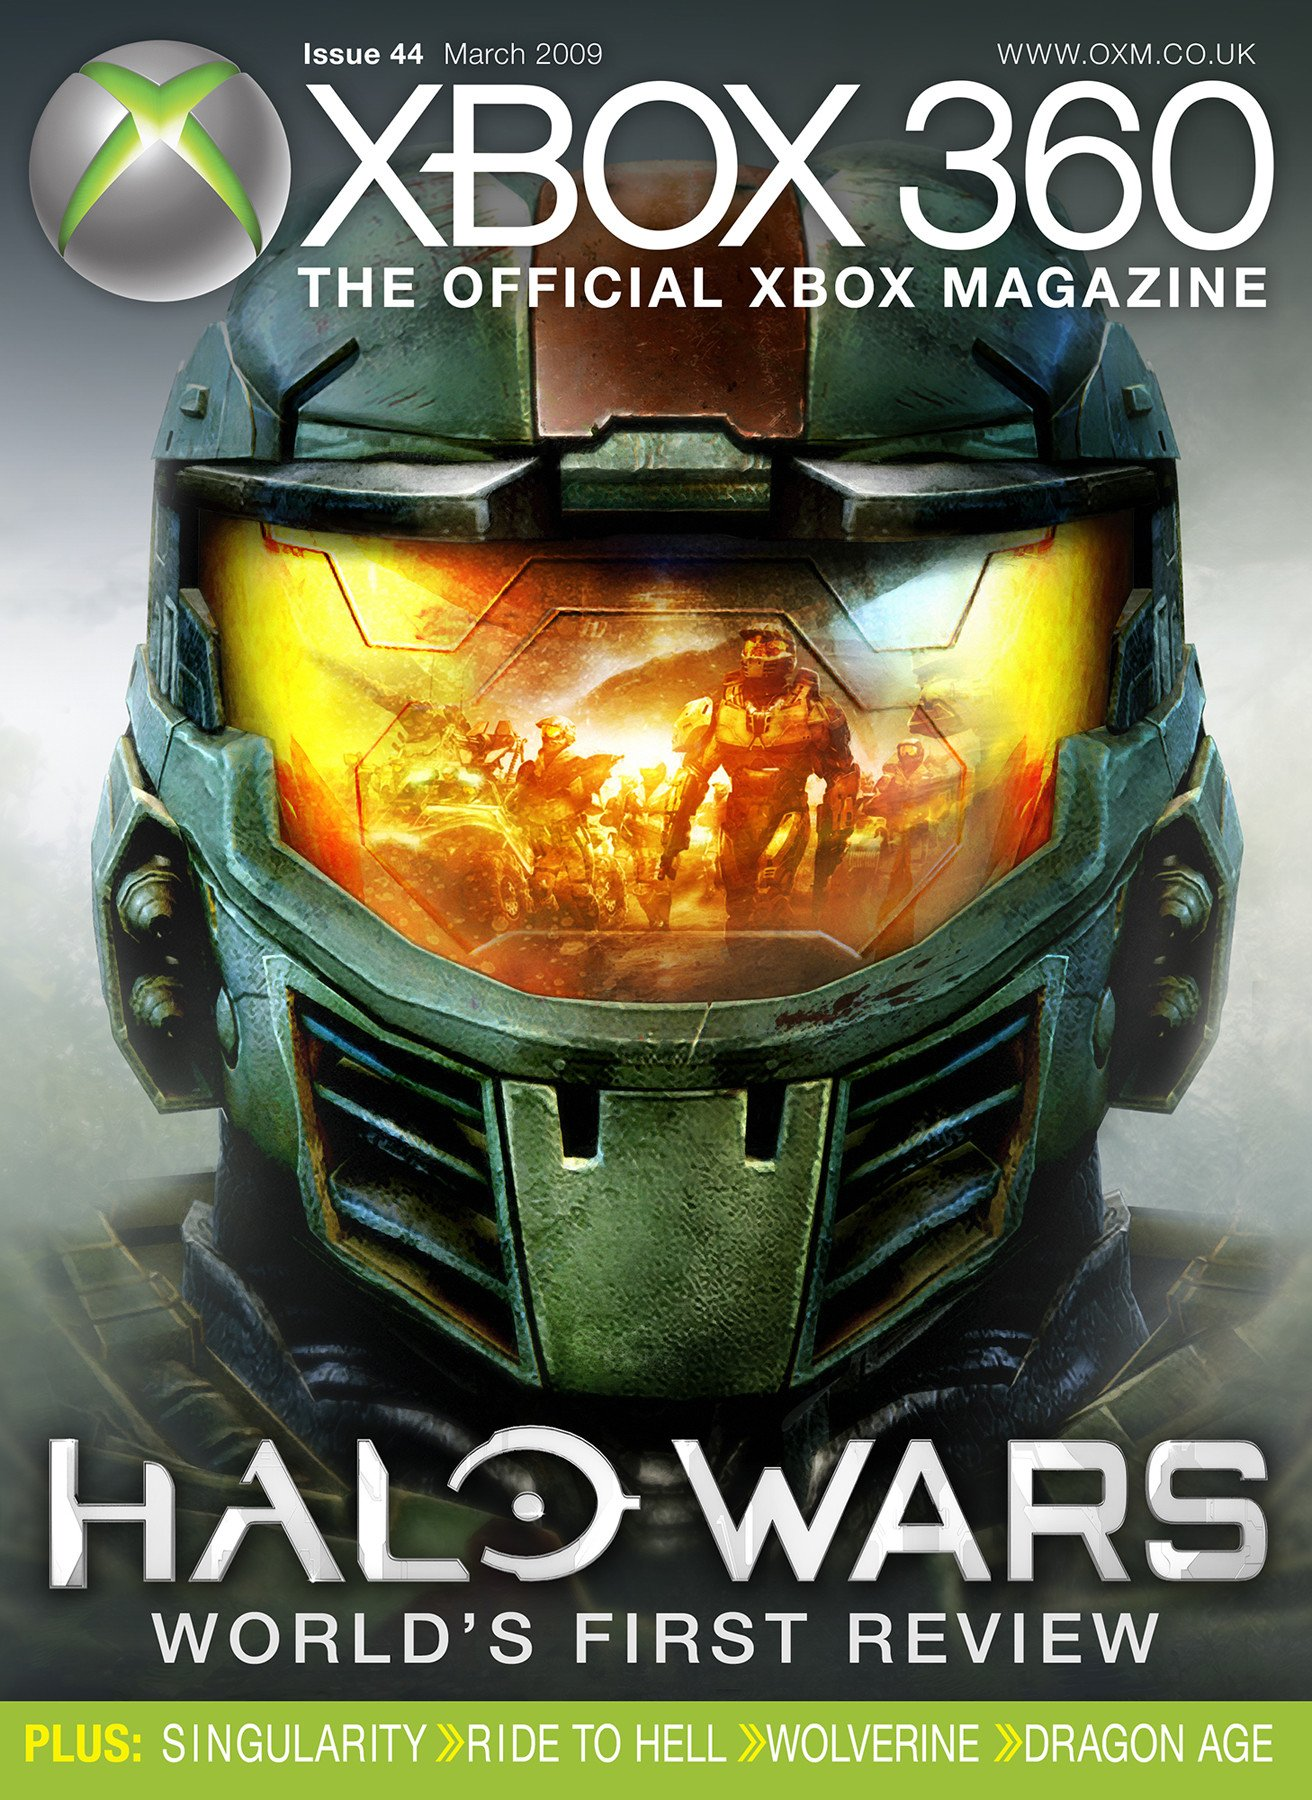 XBOX 360 The Official Magazine Issue 044 March 2009